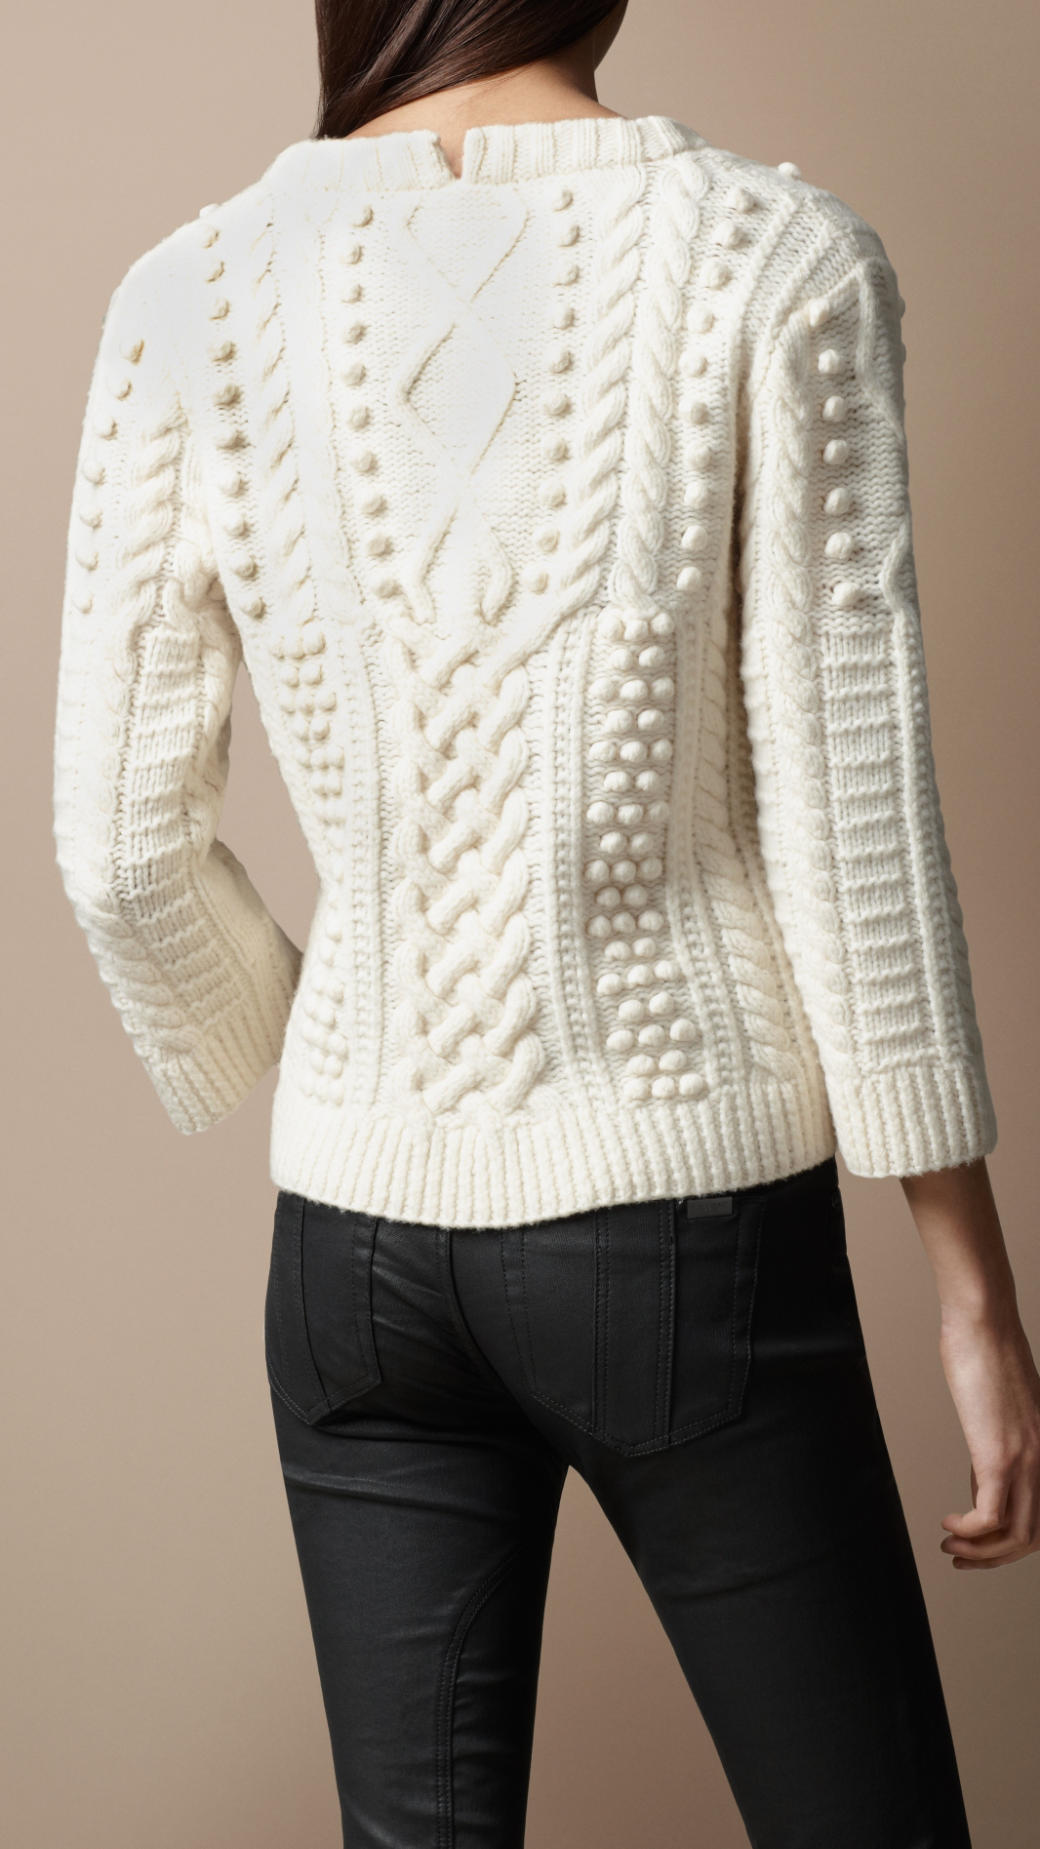 Cold weather cable knit sweater styles might include a turtleneck sweater, knit cardigan, or wrap sweater. Versatile sweaters for women styles would be the v neck sweater and the oversized cardigan, both of which could be worn at any time depending on the thickness of the material.